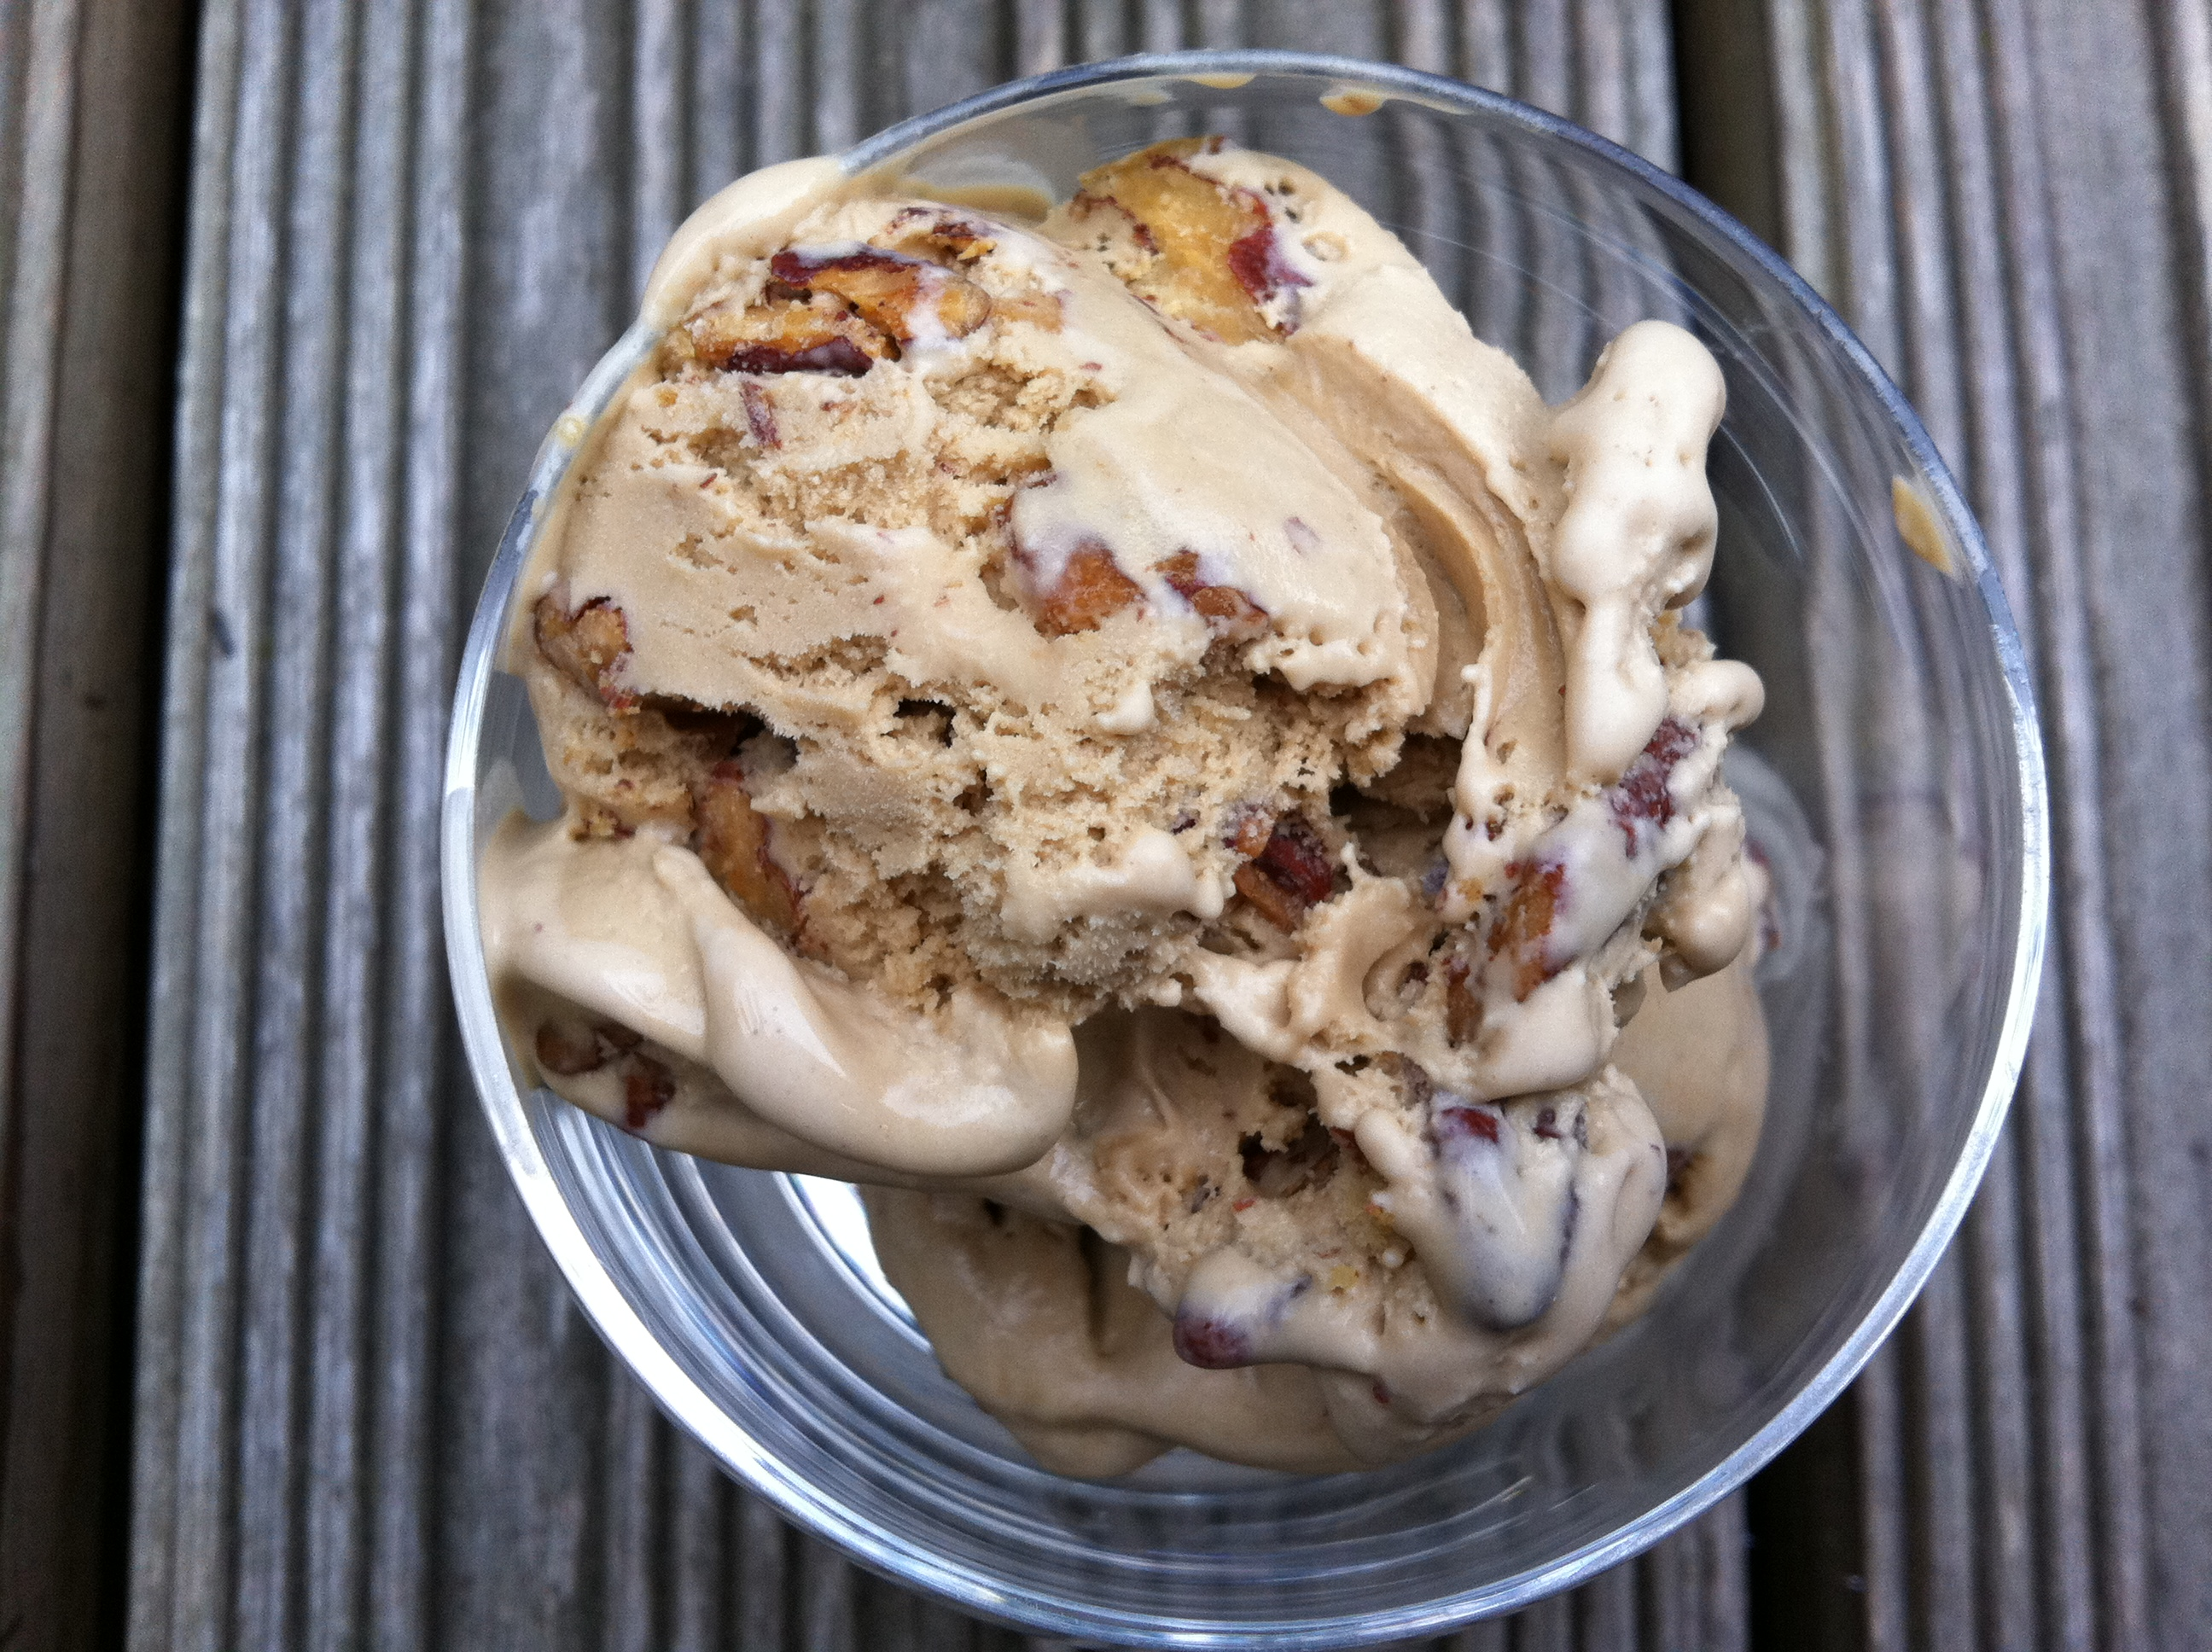 butterscotch_pecan_ice_cream_david_lebowitz